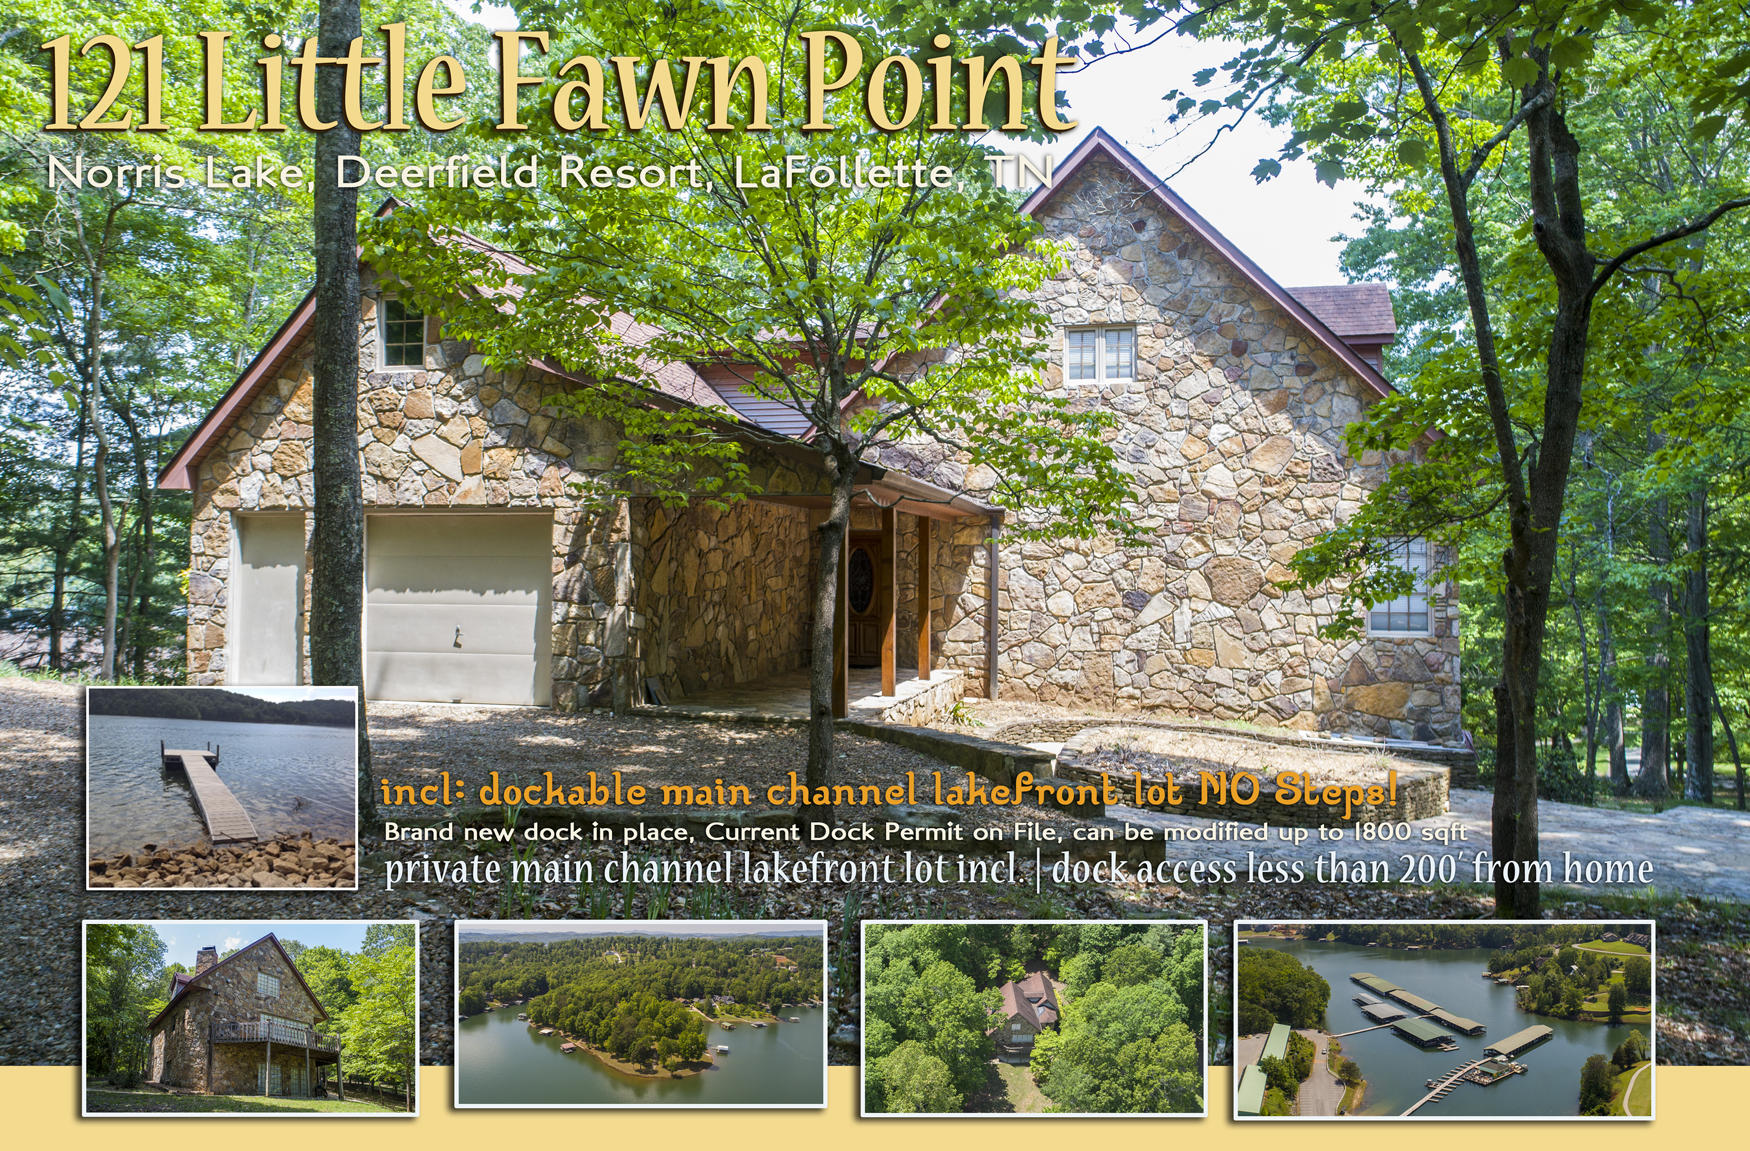 121 Little Fawn Point